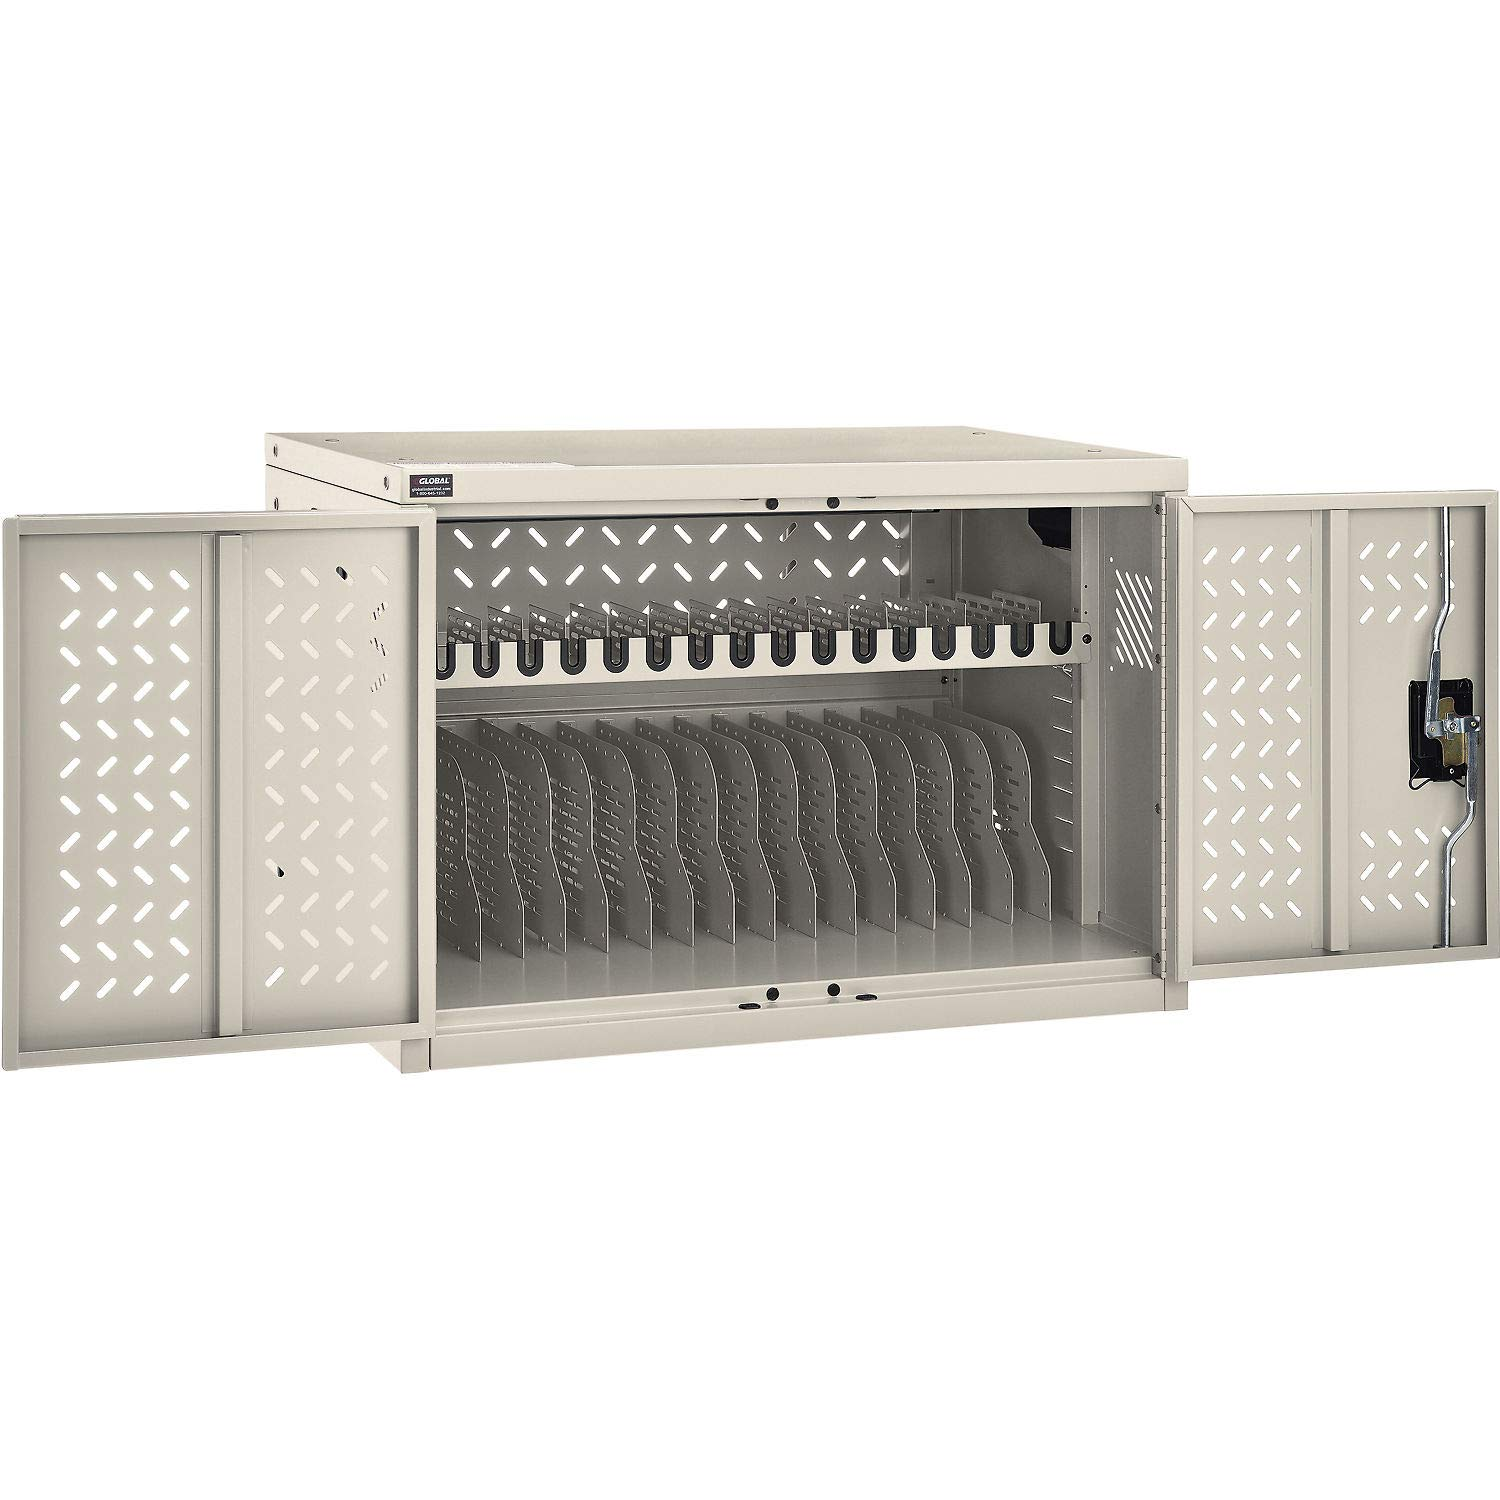 16-Device Charging Cabinet, Putty, Unassembled by Global Industrial